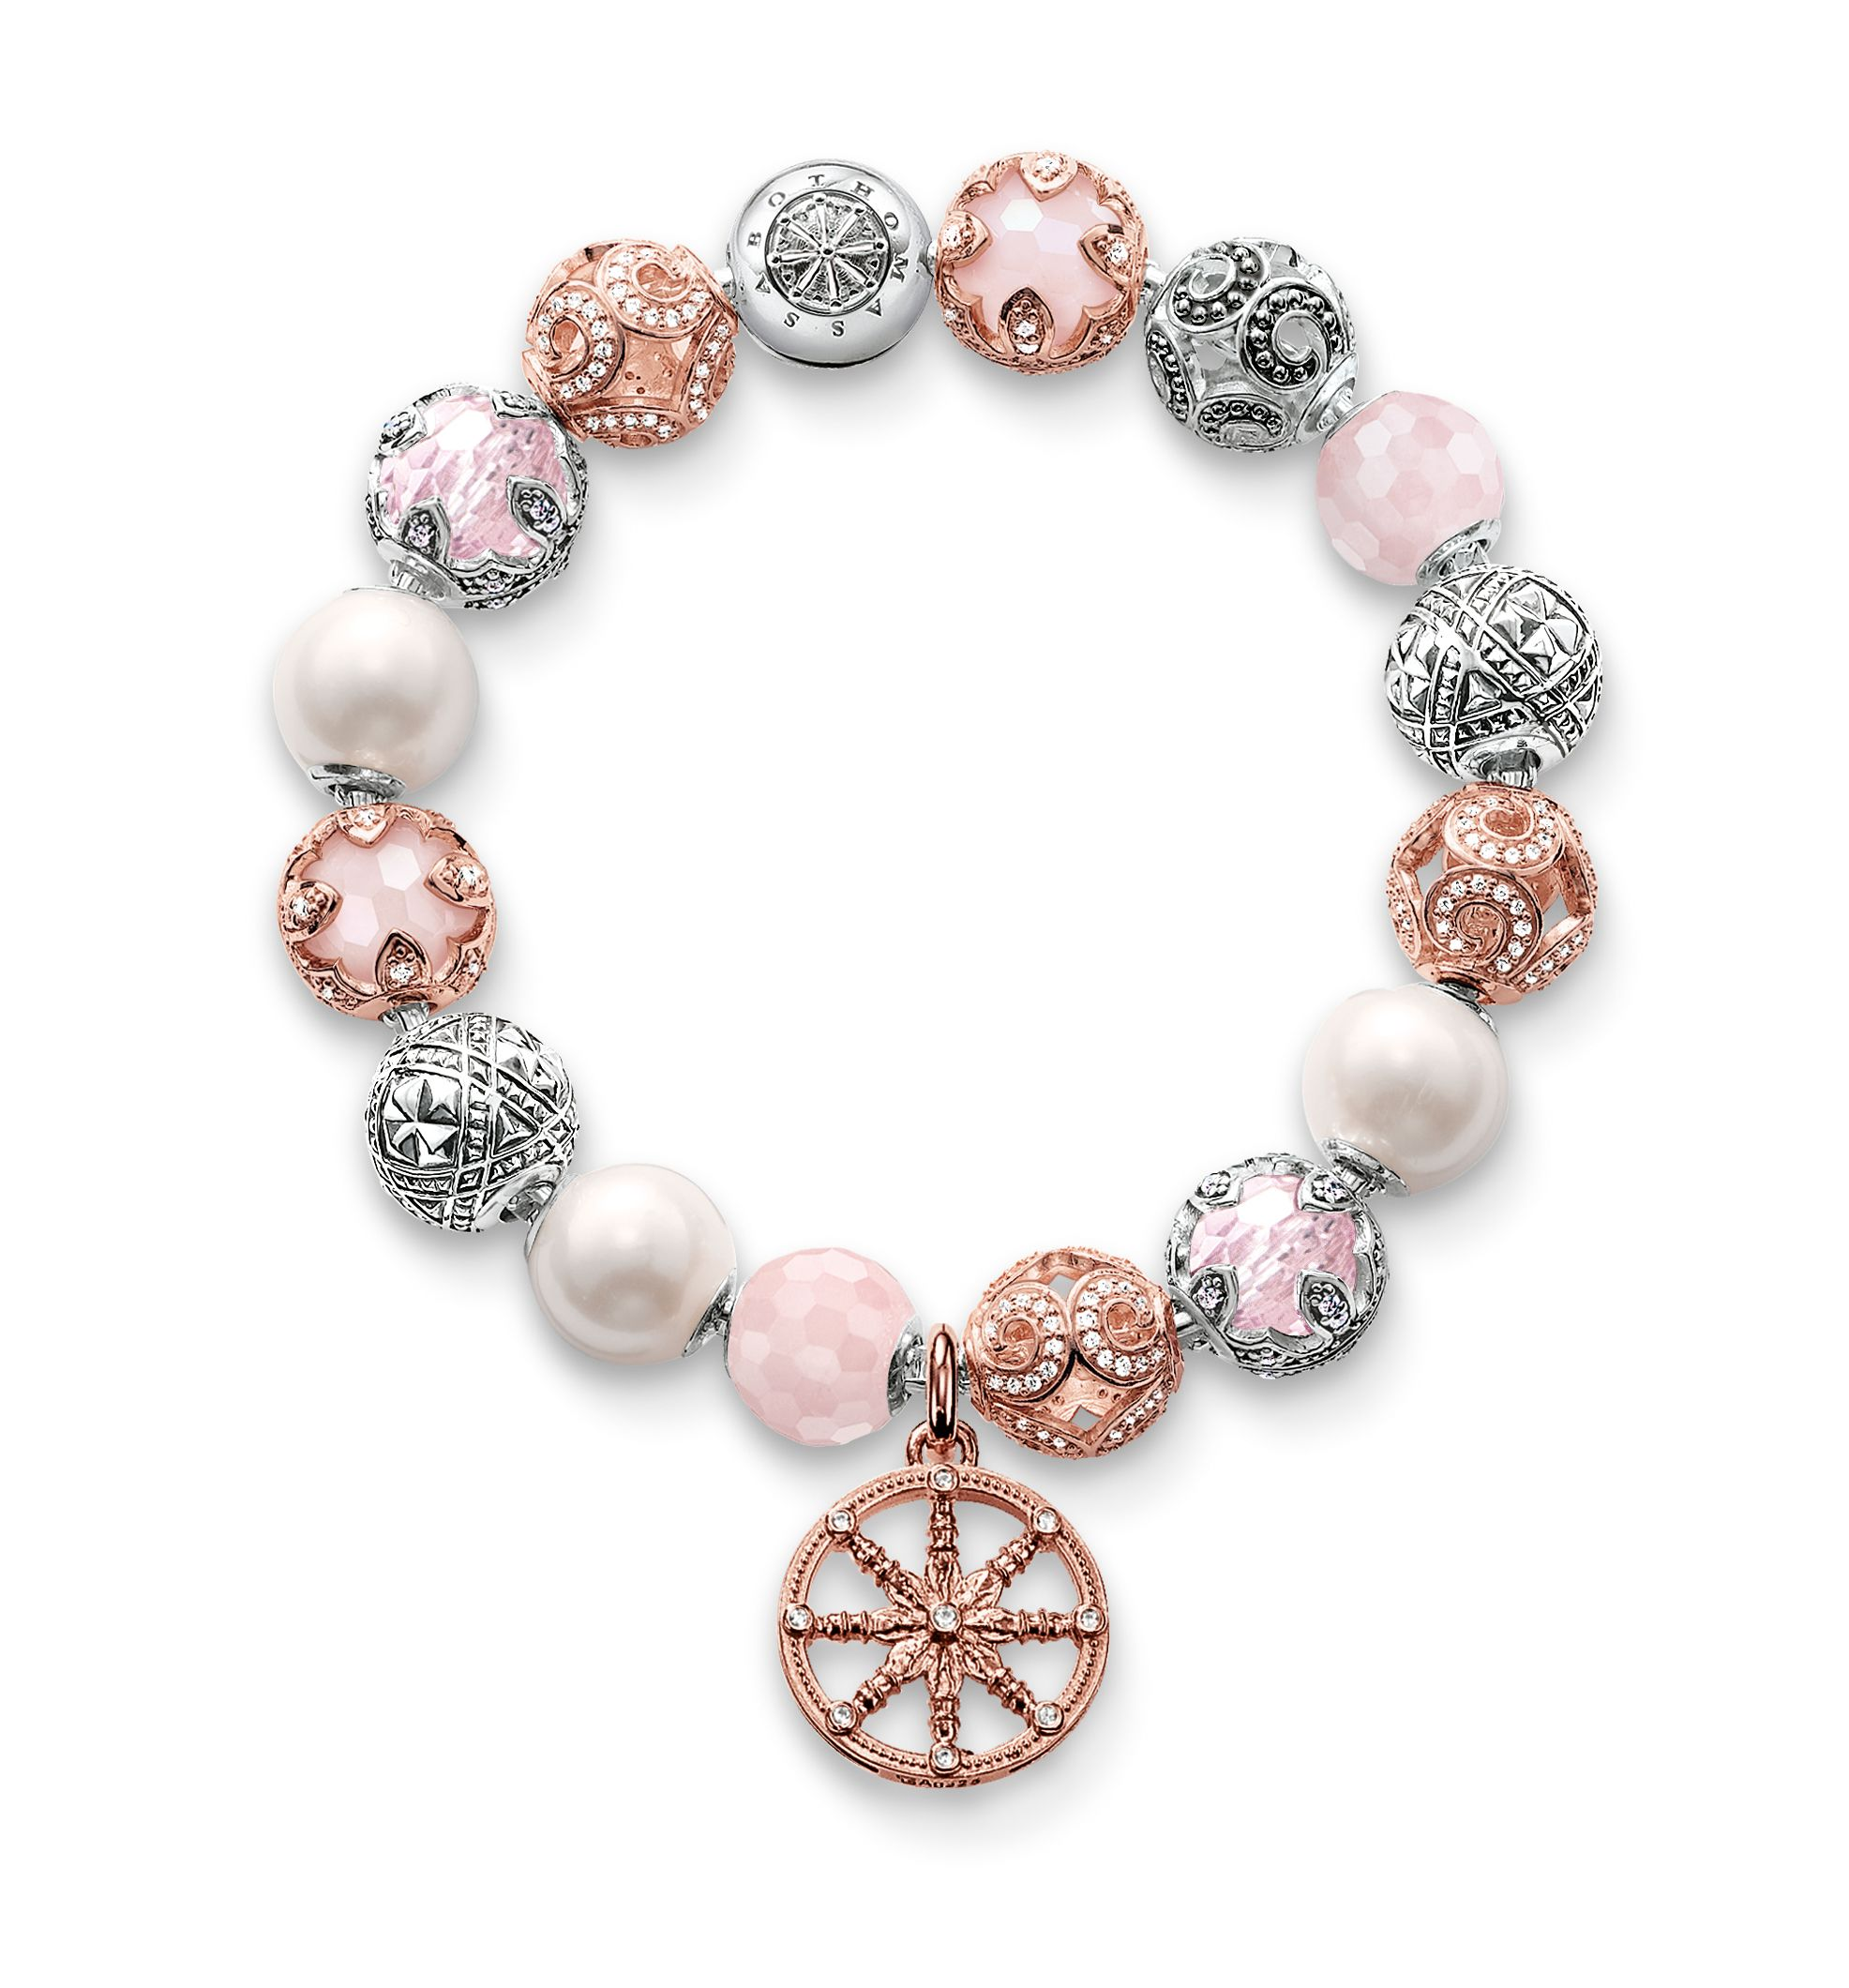 Thomas sabo white and rose gold watch